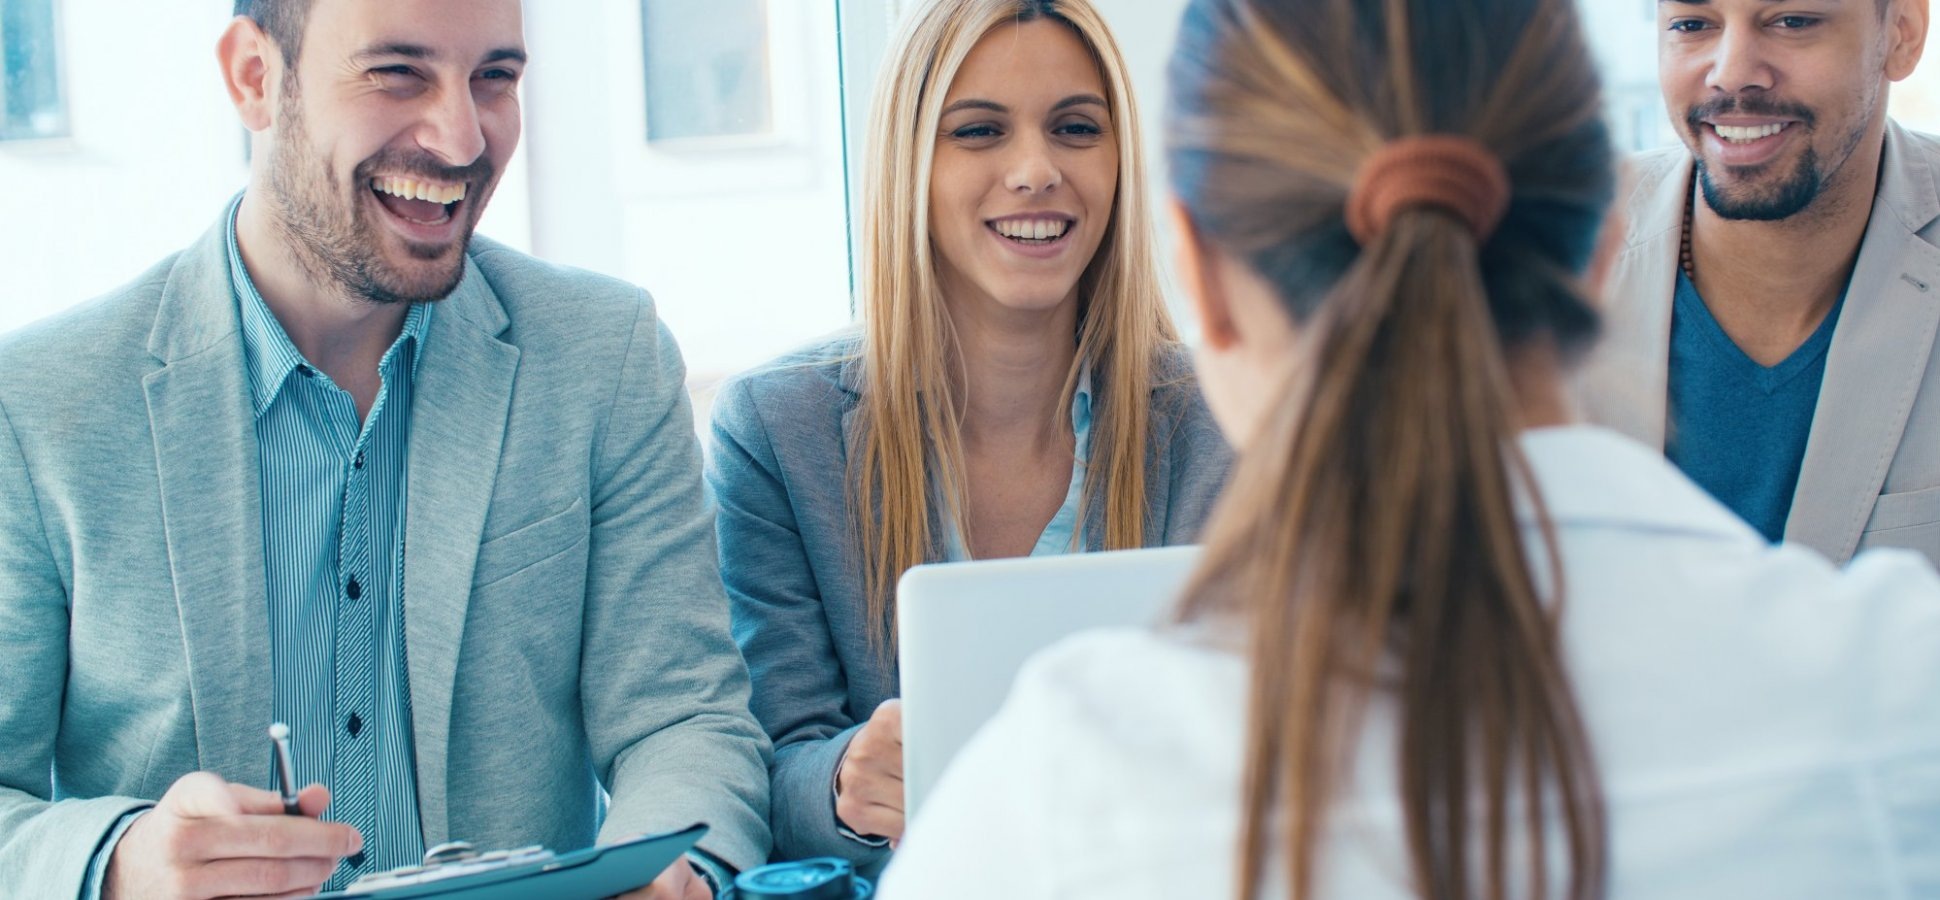 Why Group Job Interviews Are Getting Insanely Popular (and, How to Make Sure You Nail One)